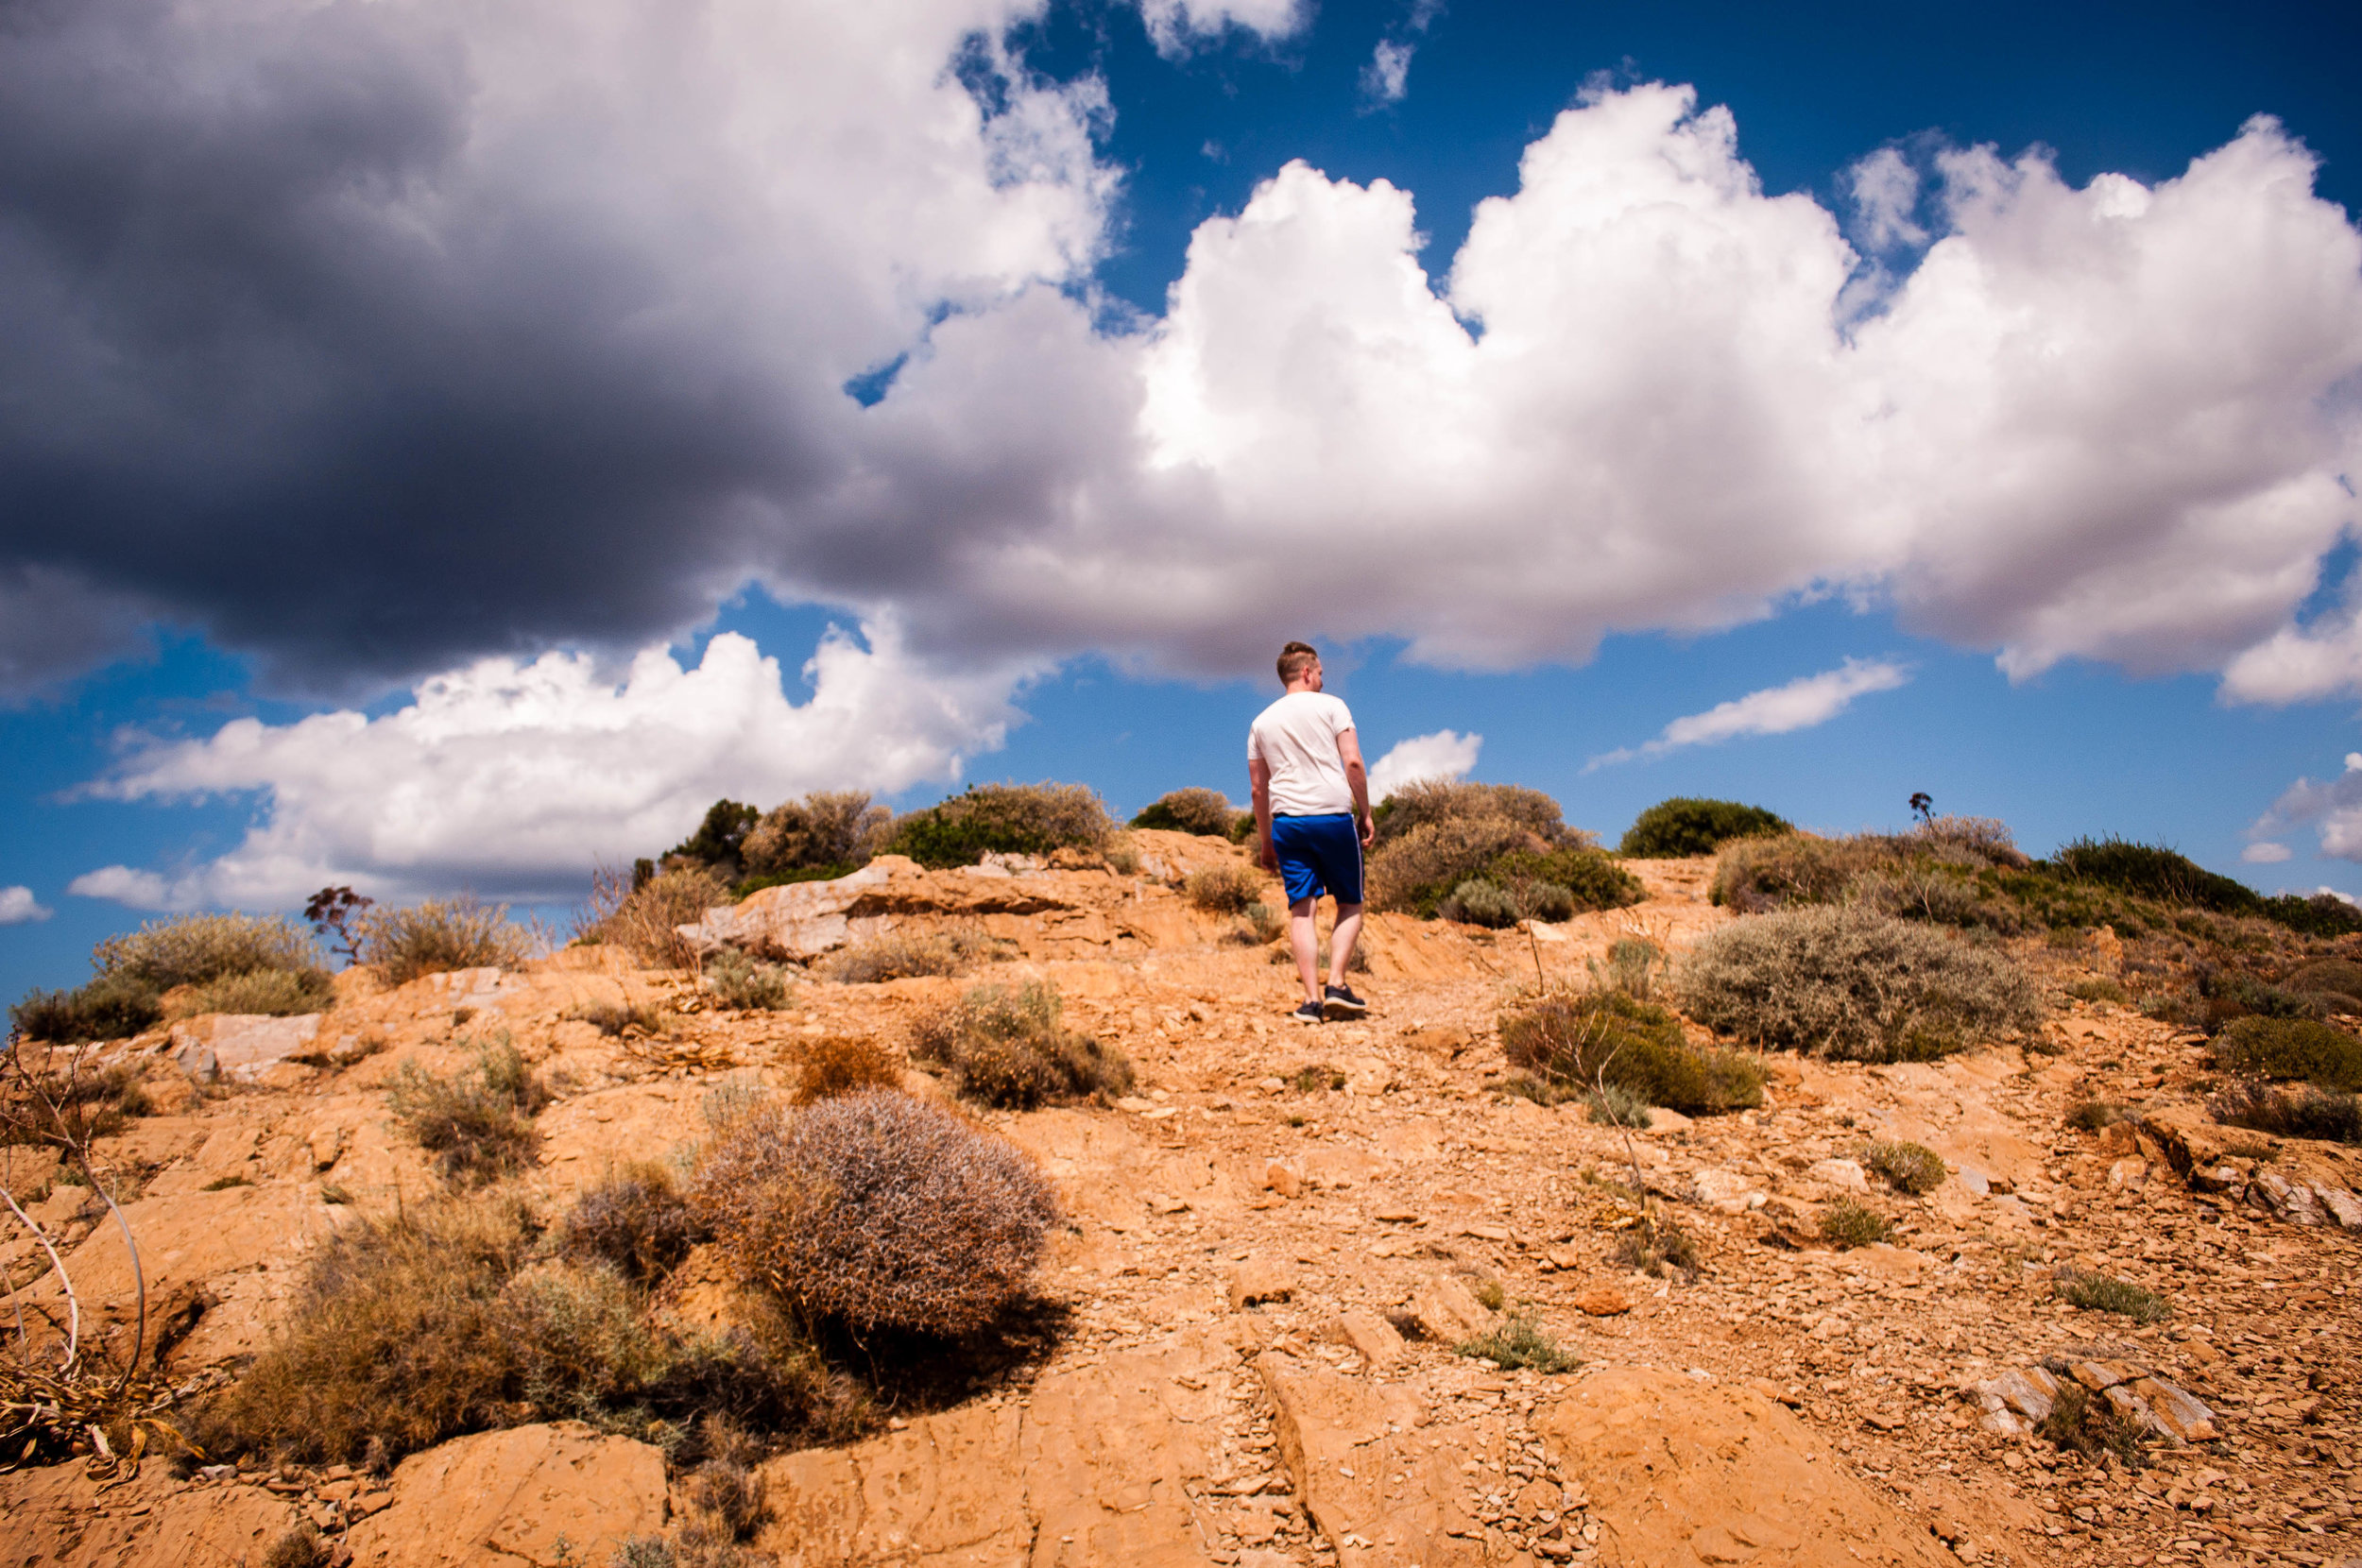 Blue sky with clouds with a white man walking near a cliff on a terracotta ground  in Sounion (Greece)